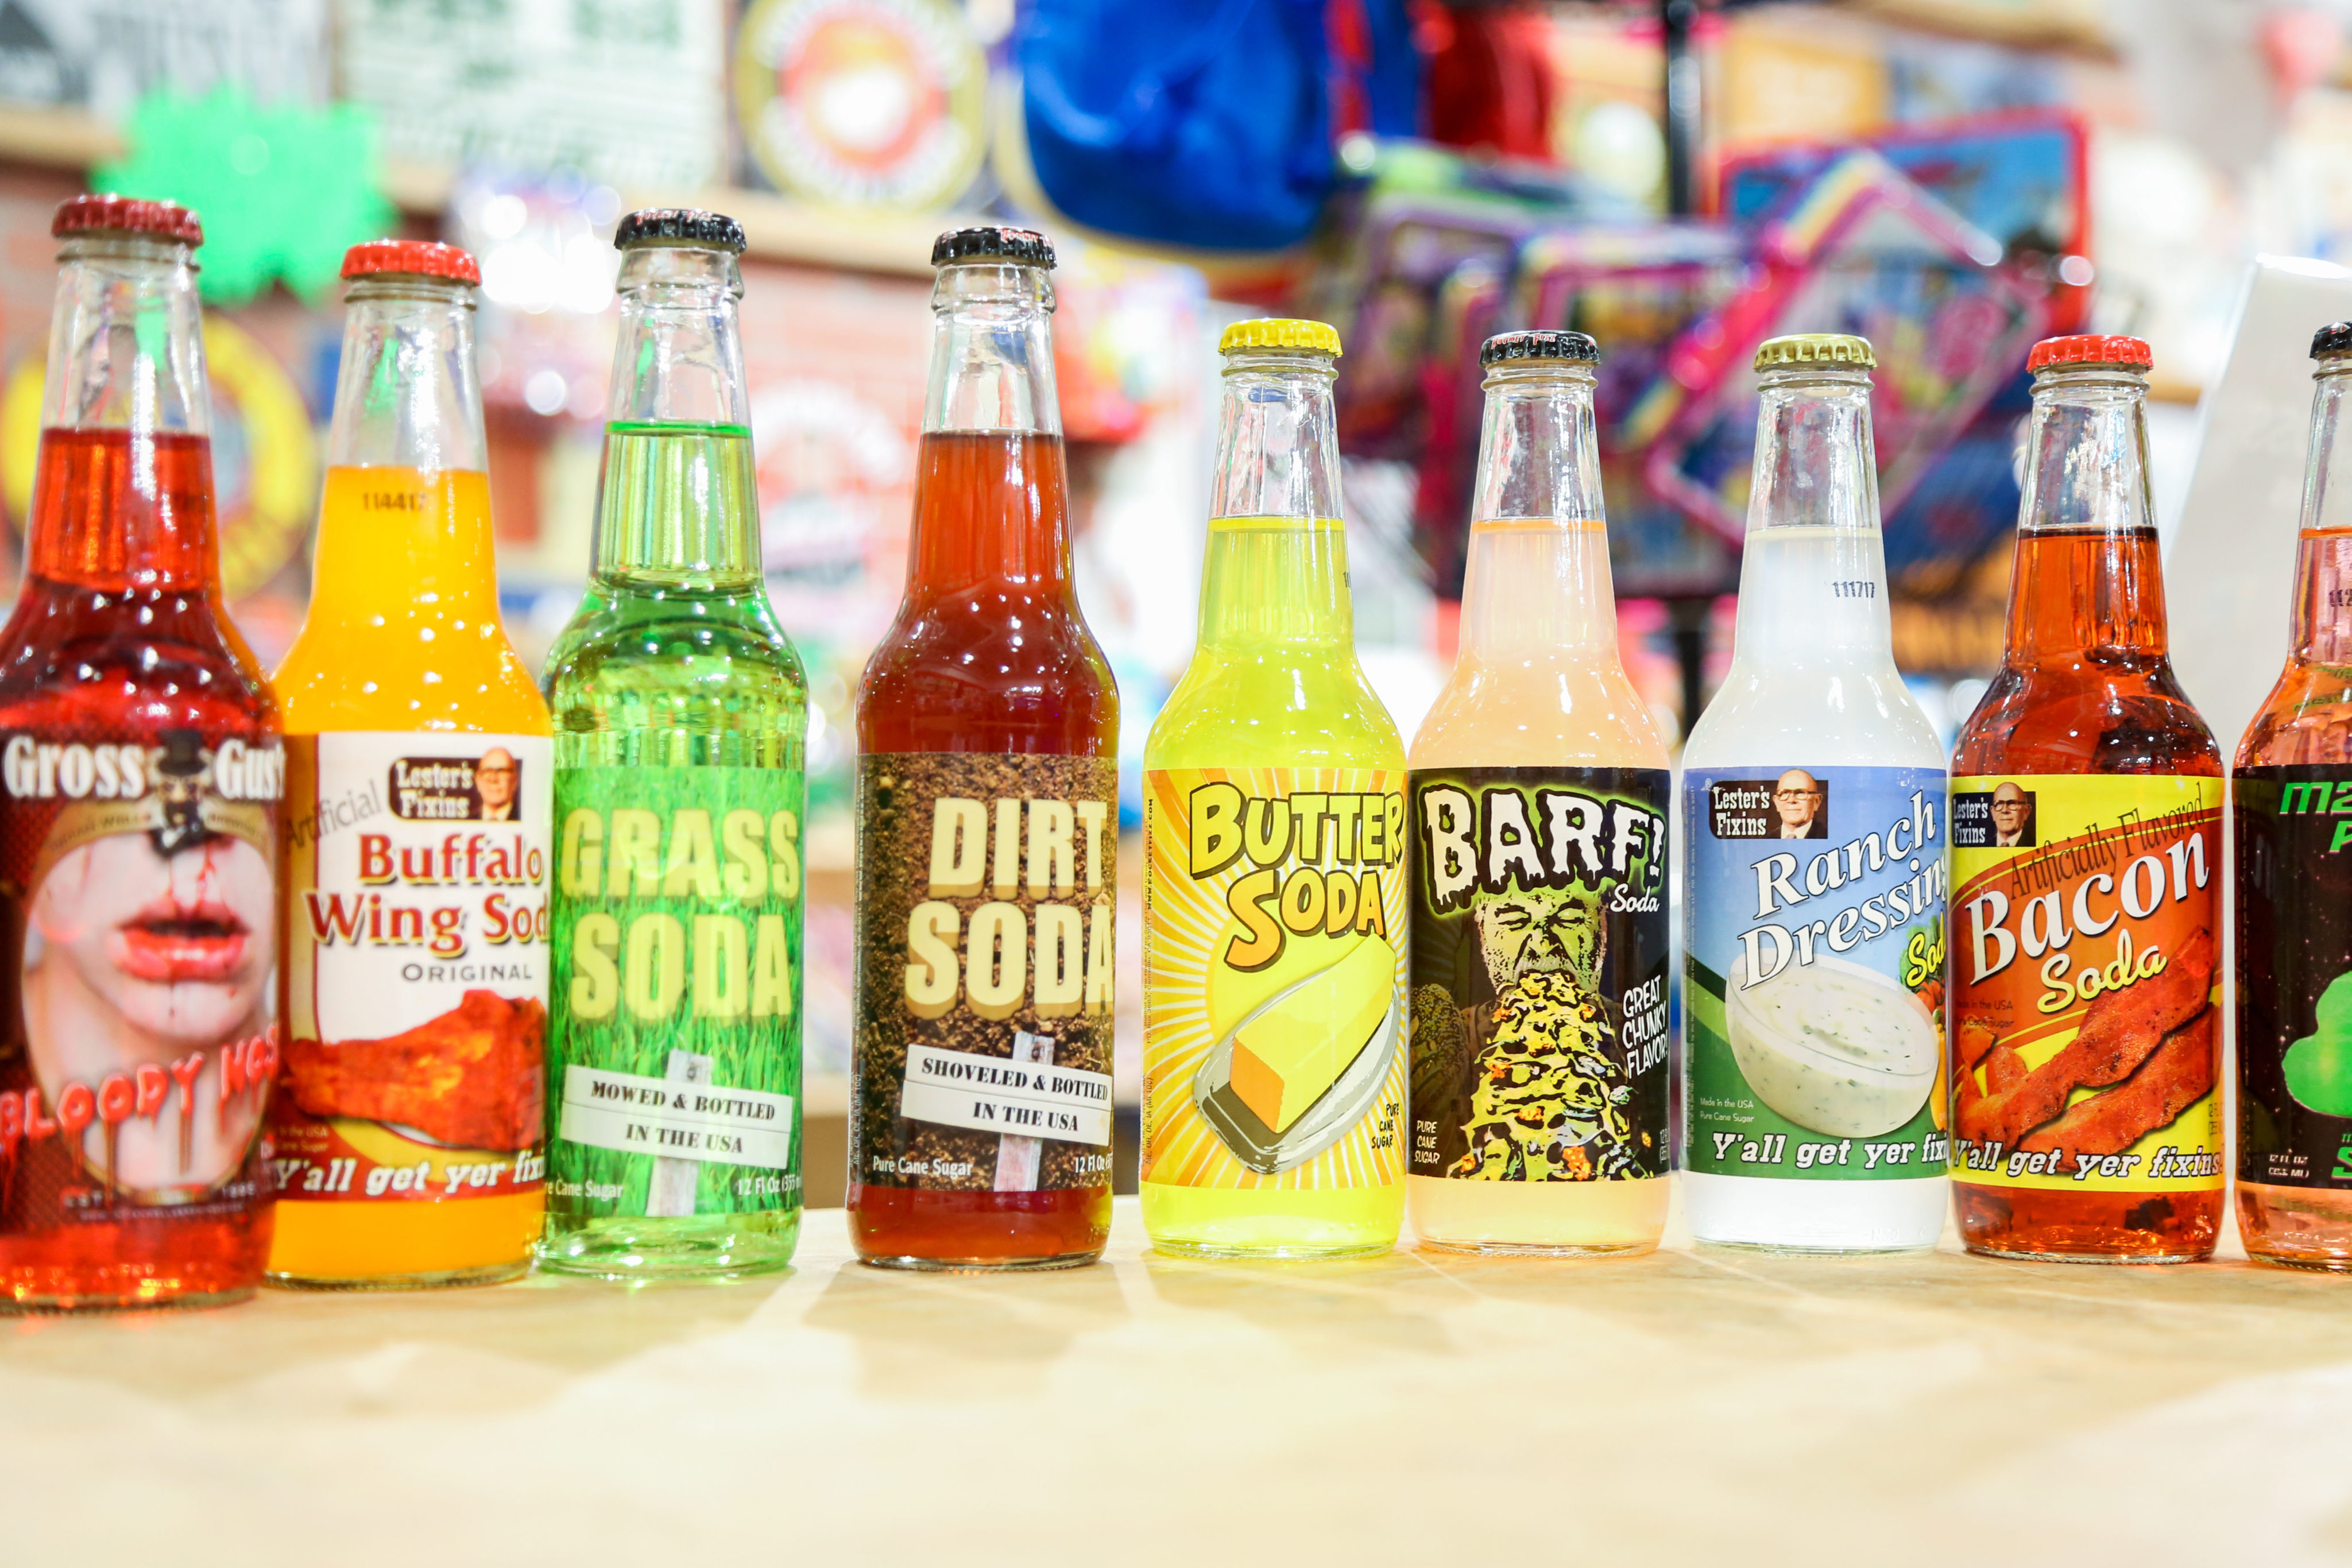 The most unusual soda